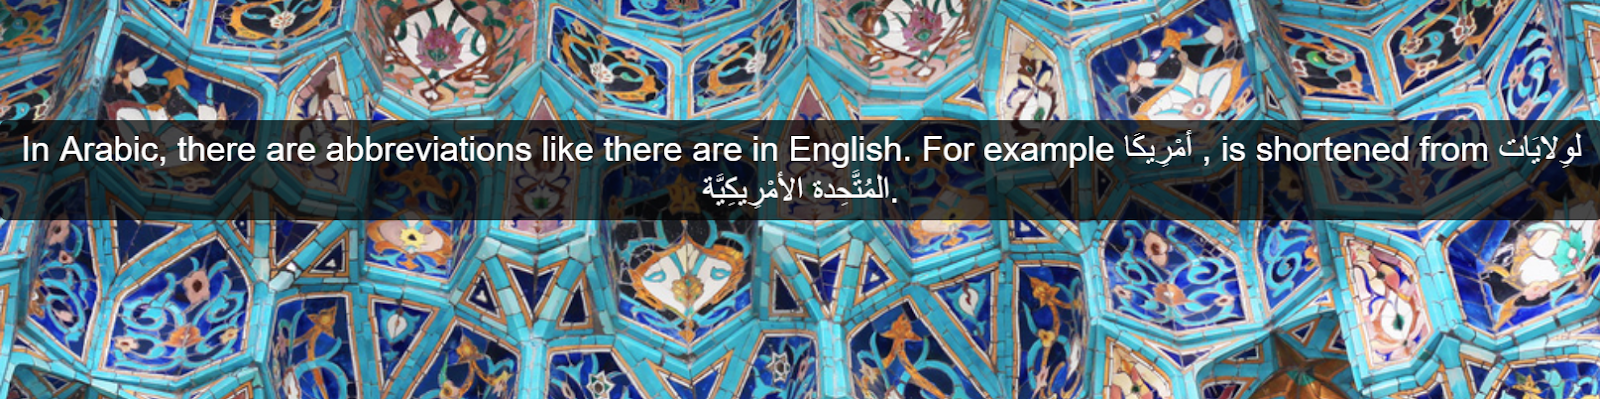 In Arabic, there are abbreviations like there are in English. For example أمْرِيكَا , is shortened from لوِلايَات المُتَّحِدة الأمْرِيكِيَّة.